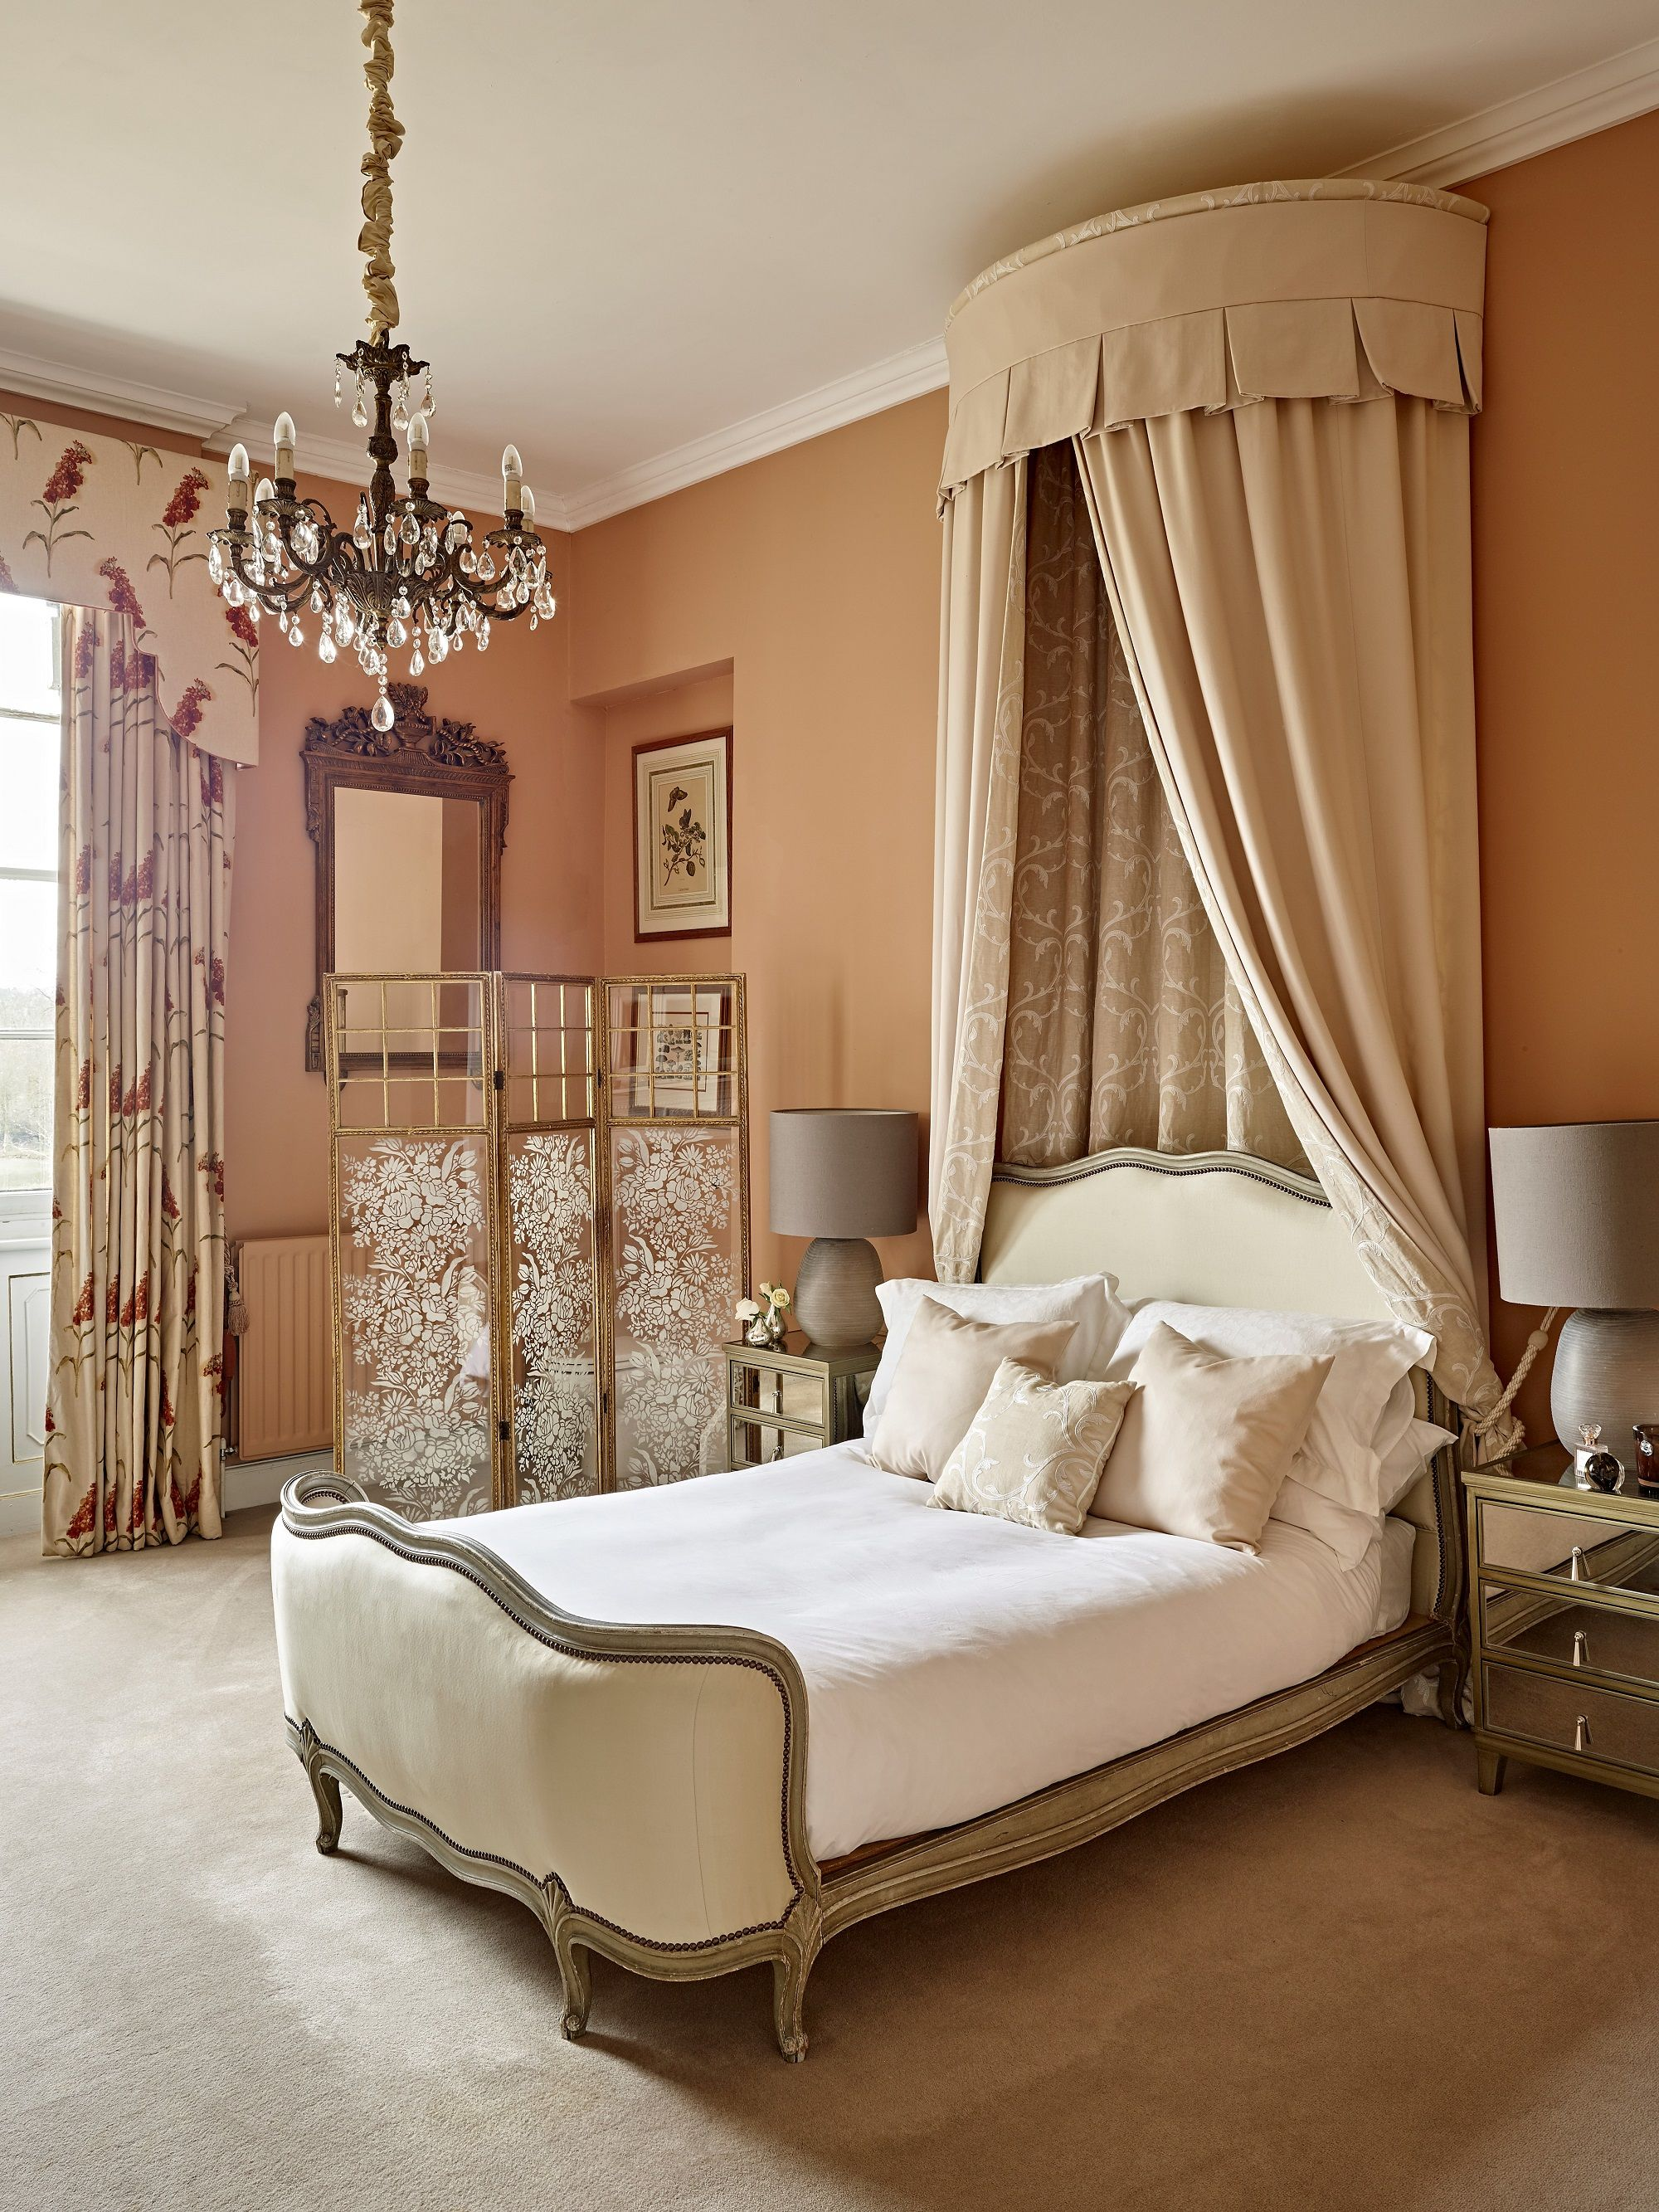 Bedrooms 2018 Interior Colour Trends for Every